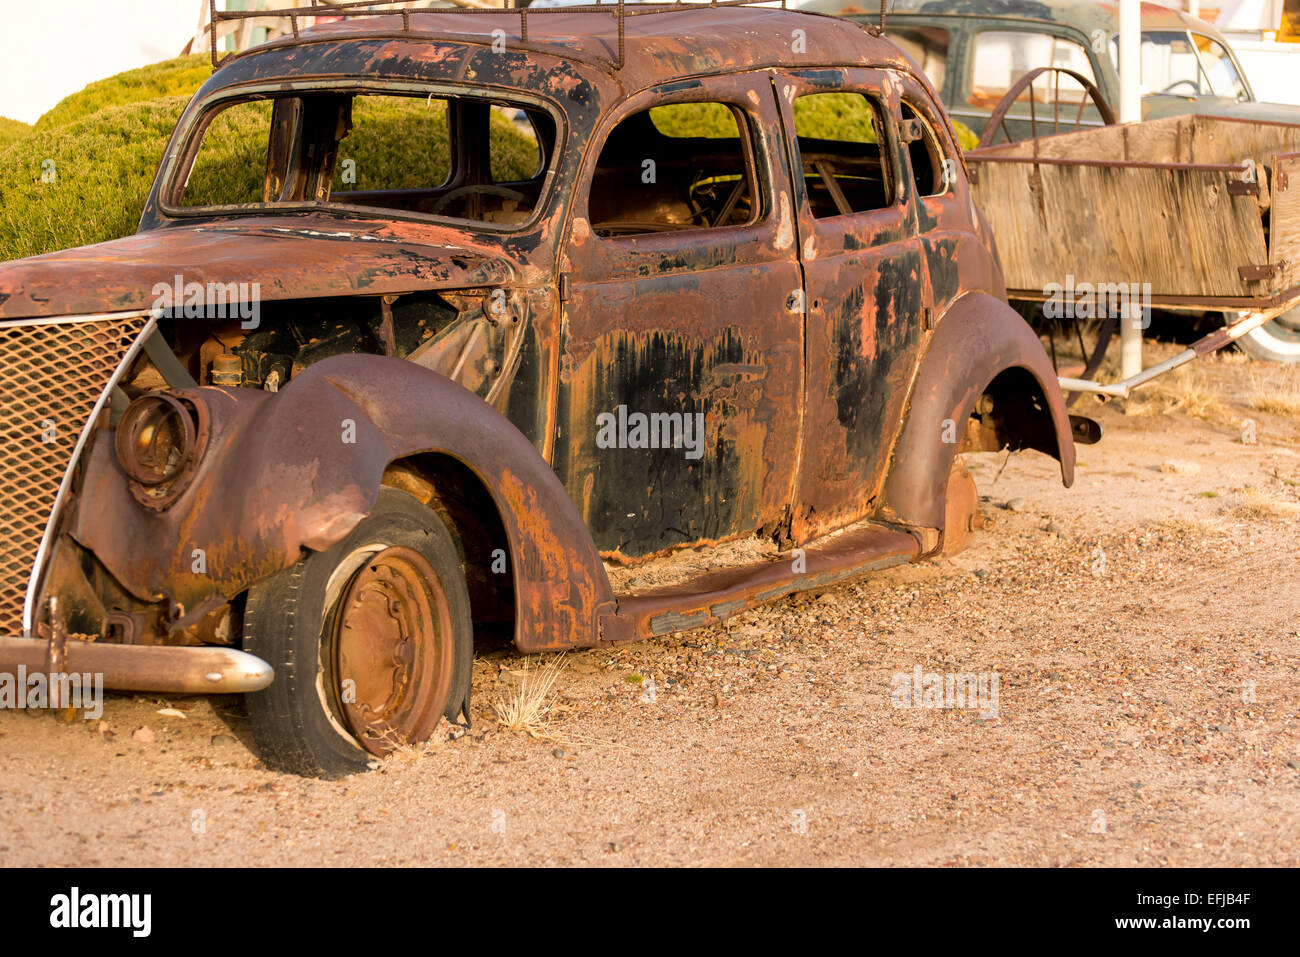 December 21, 2014 - Wigwam Hotel, Holbrook, AZ, USA: time period vehicles parked in front of the historic hotel - Stock Image